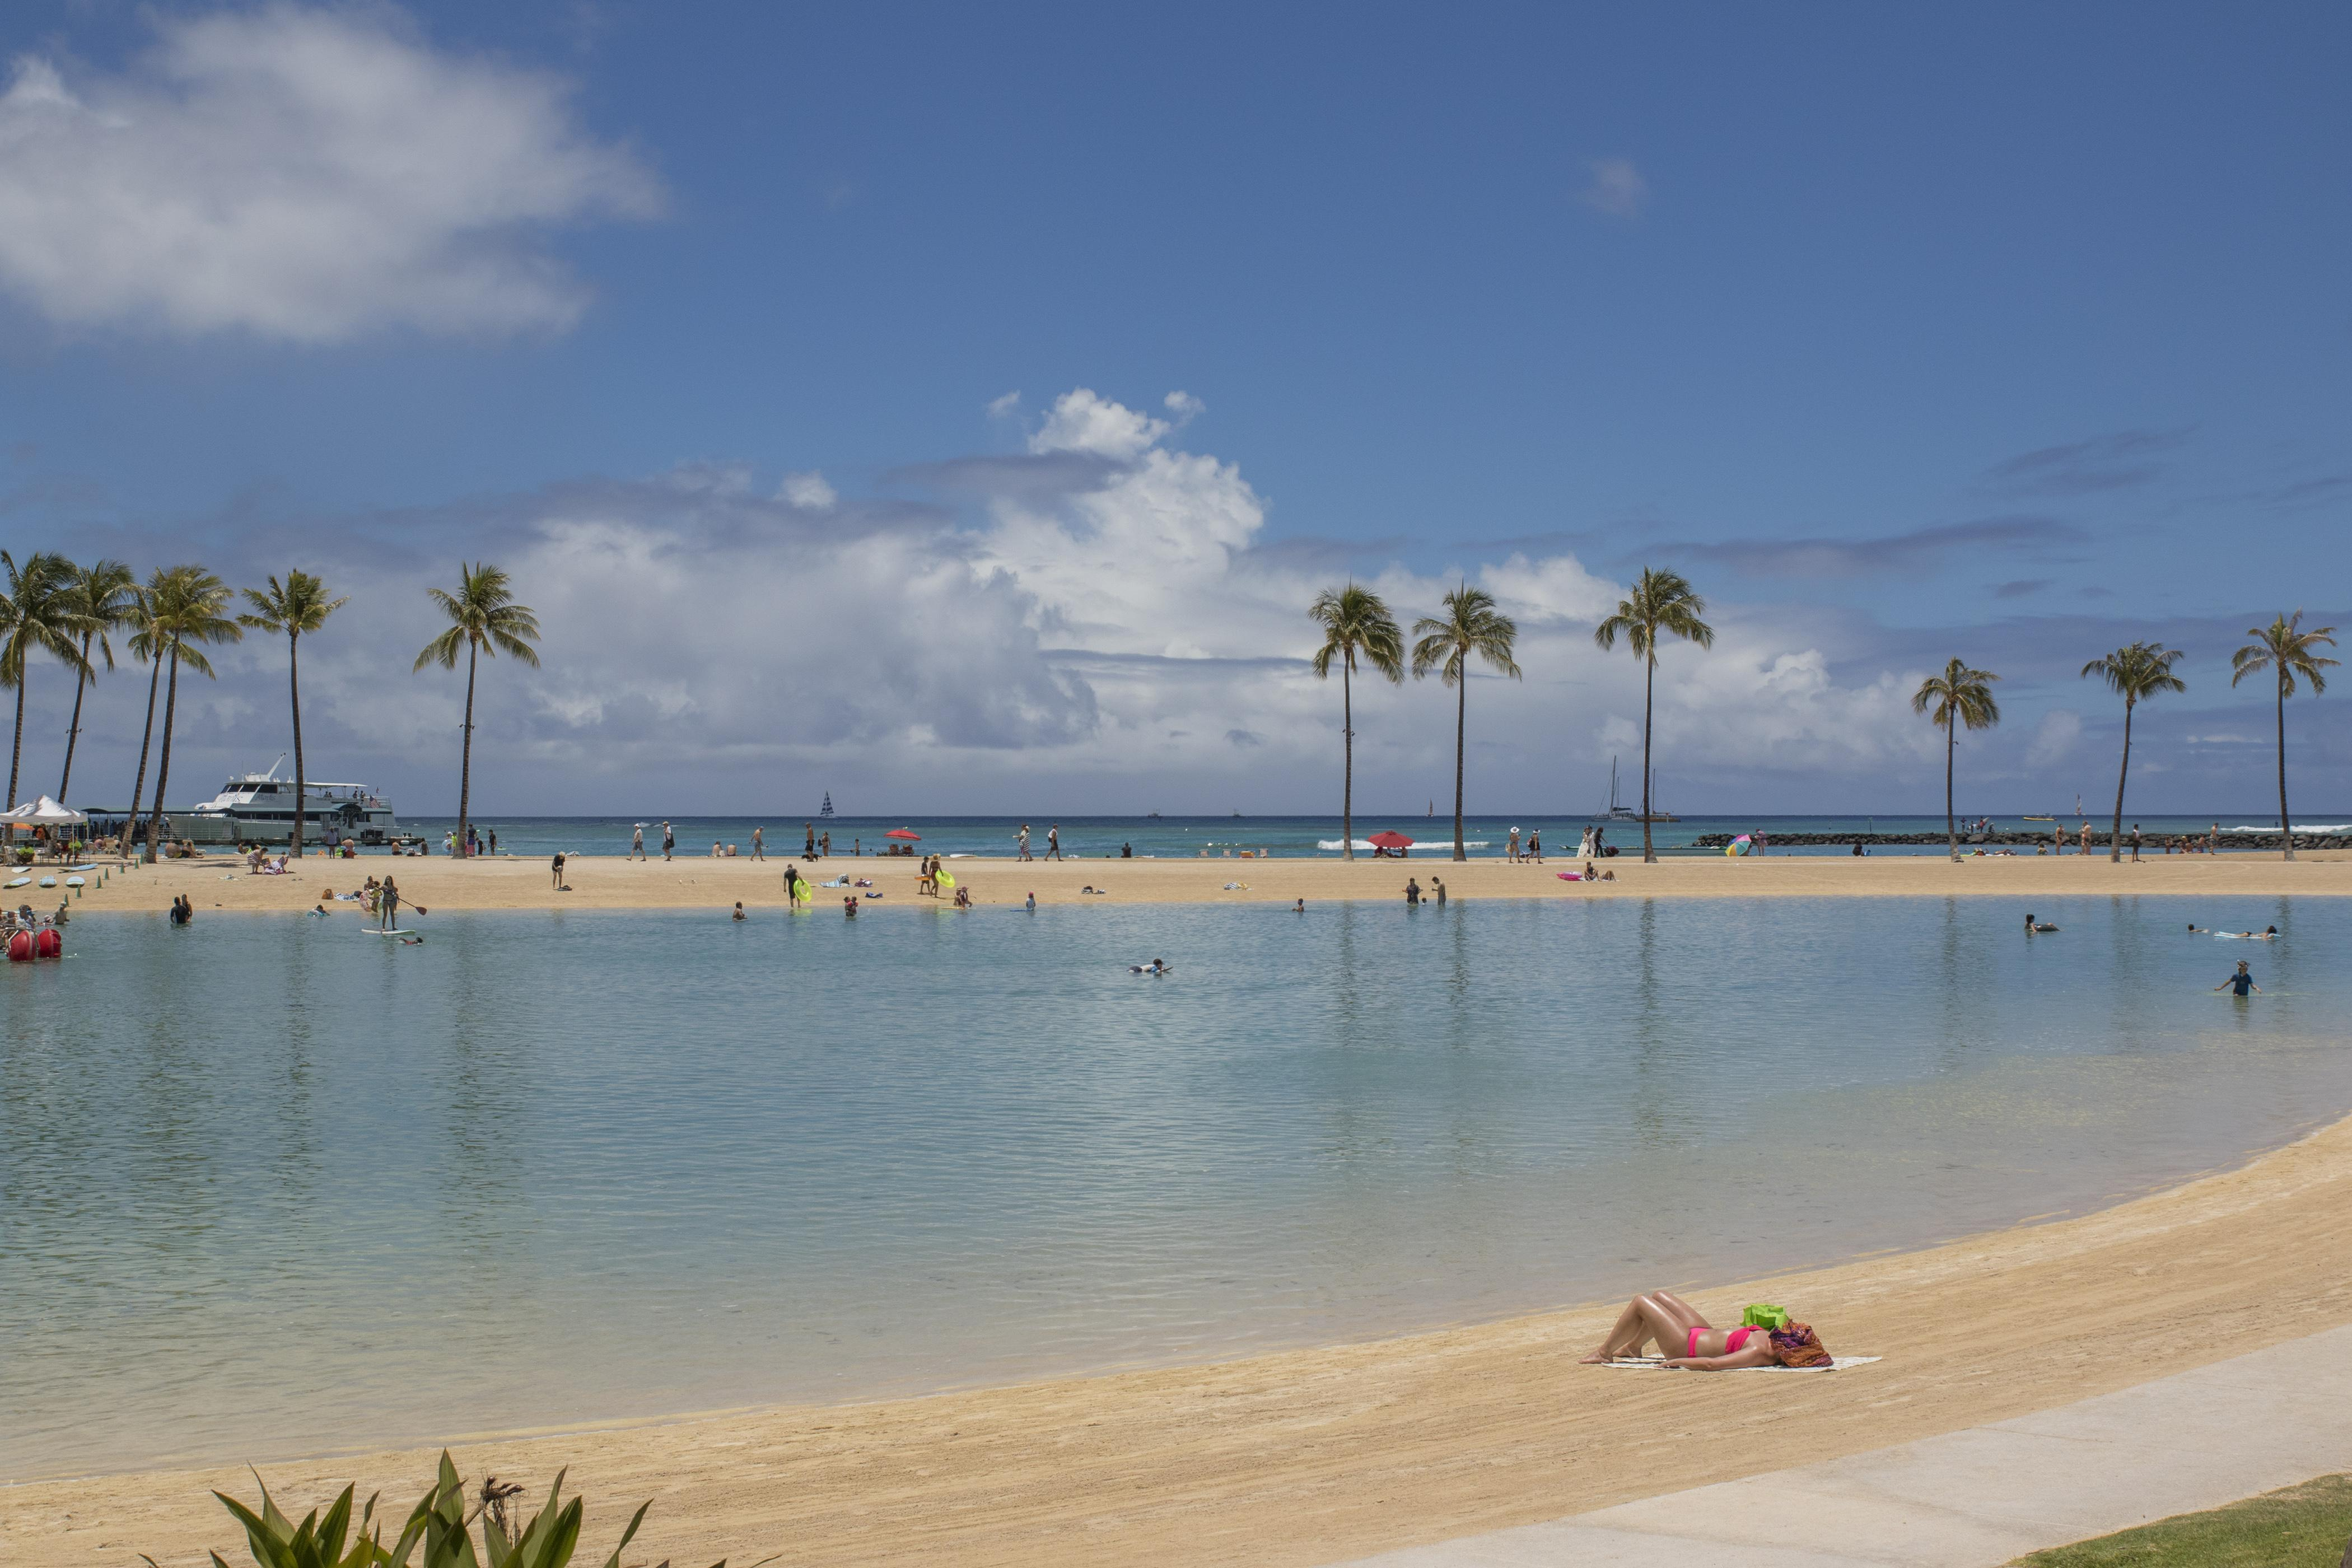 The Hilton Lagoon is just steps away.